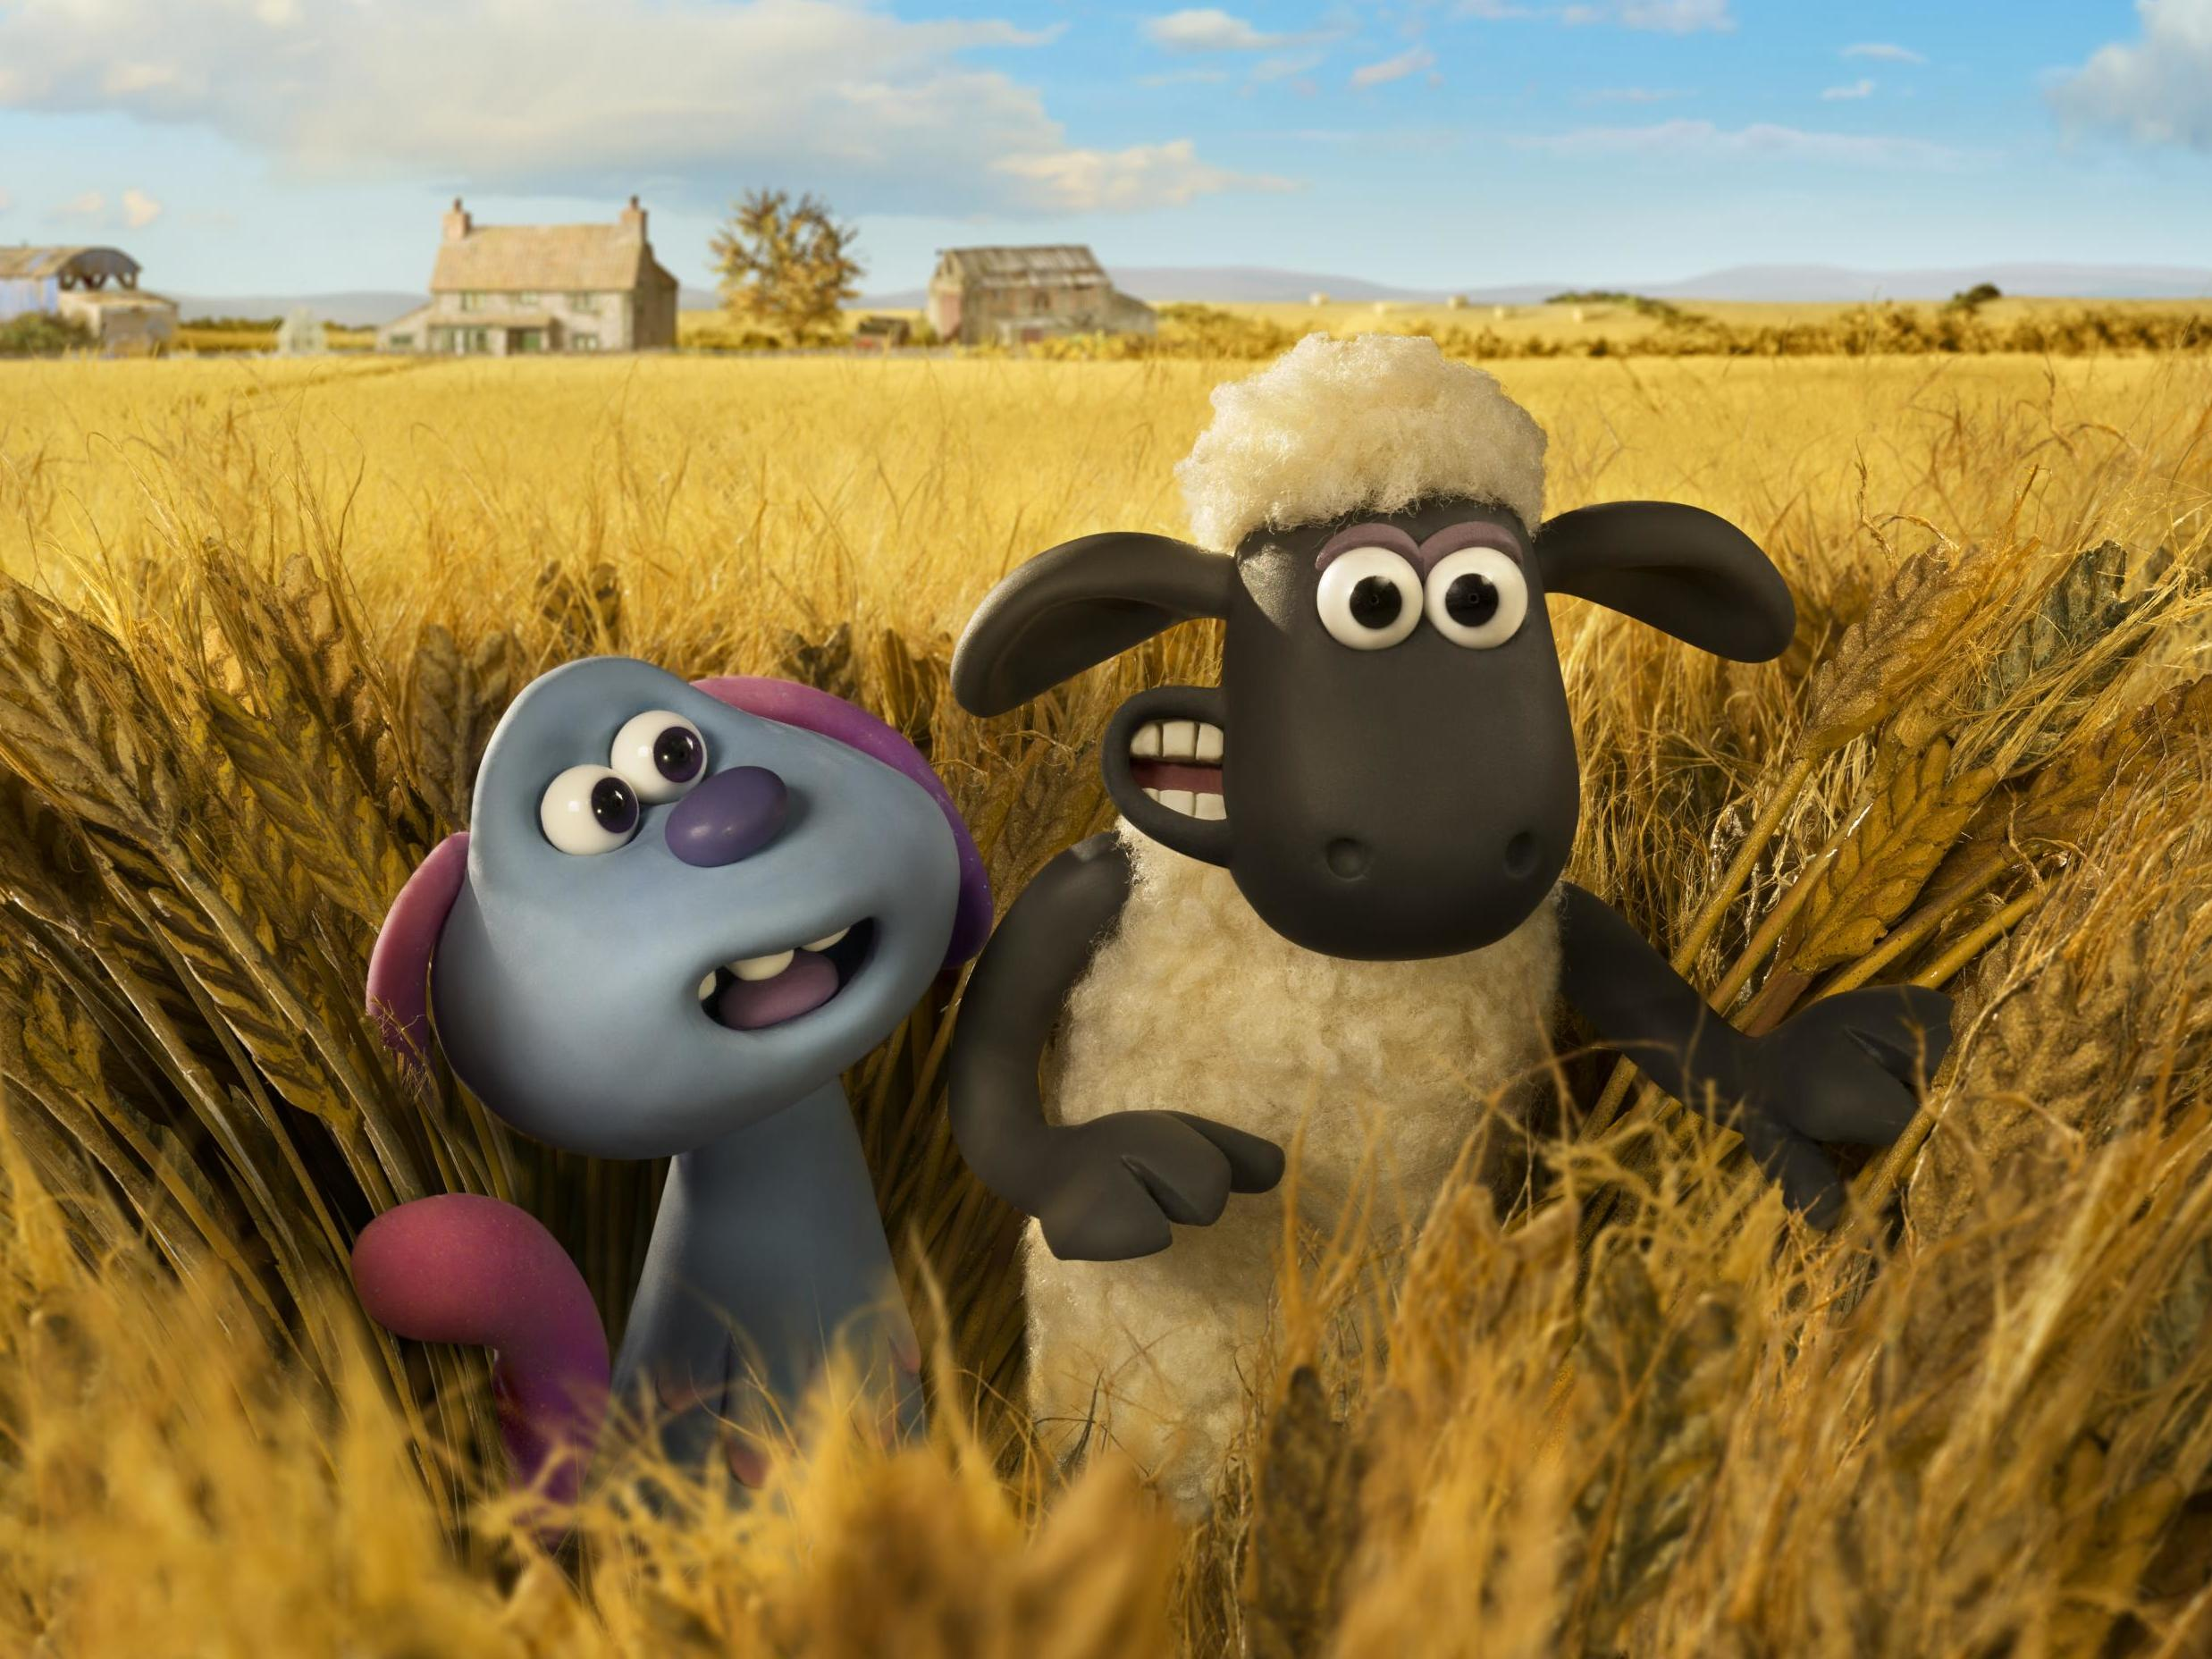 A Shaun the Sheep Movie: Farmageddon review - Full of warmth and silliness, with a touch of magic